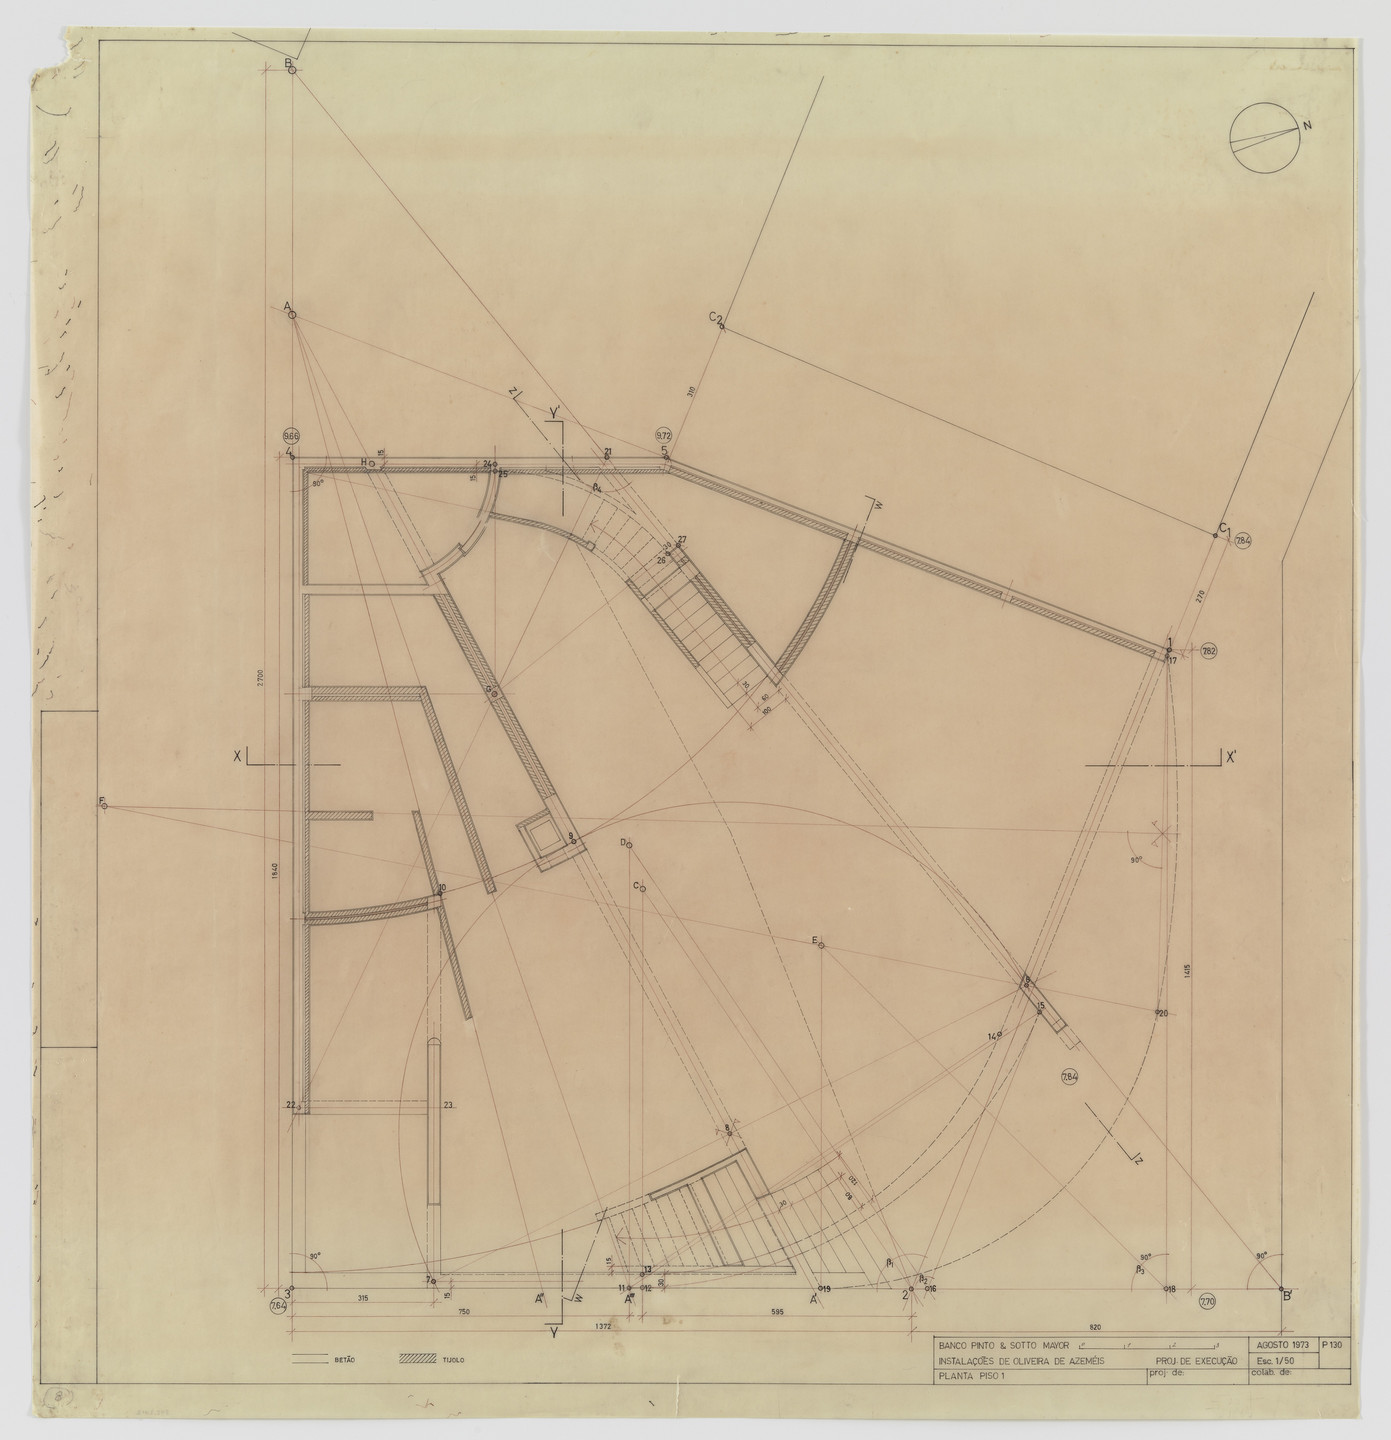 Álvaro Siza. Banco Pinto & Sotto Mayor, Oliveira de Azeméis, Portugal (First floor plan). 1971-1974